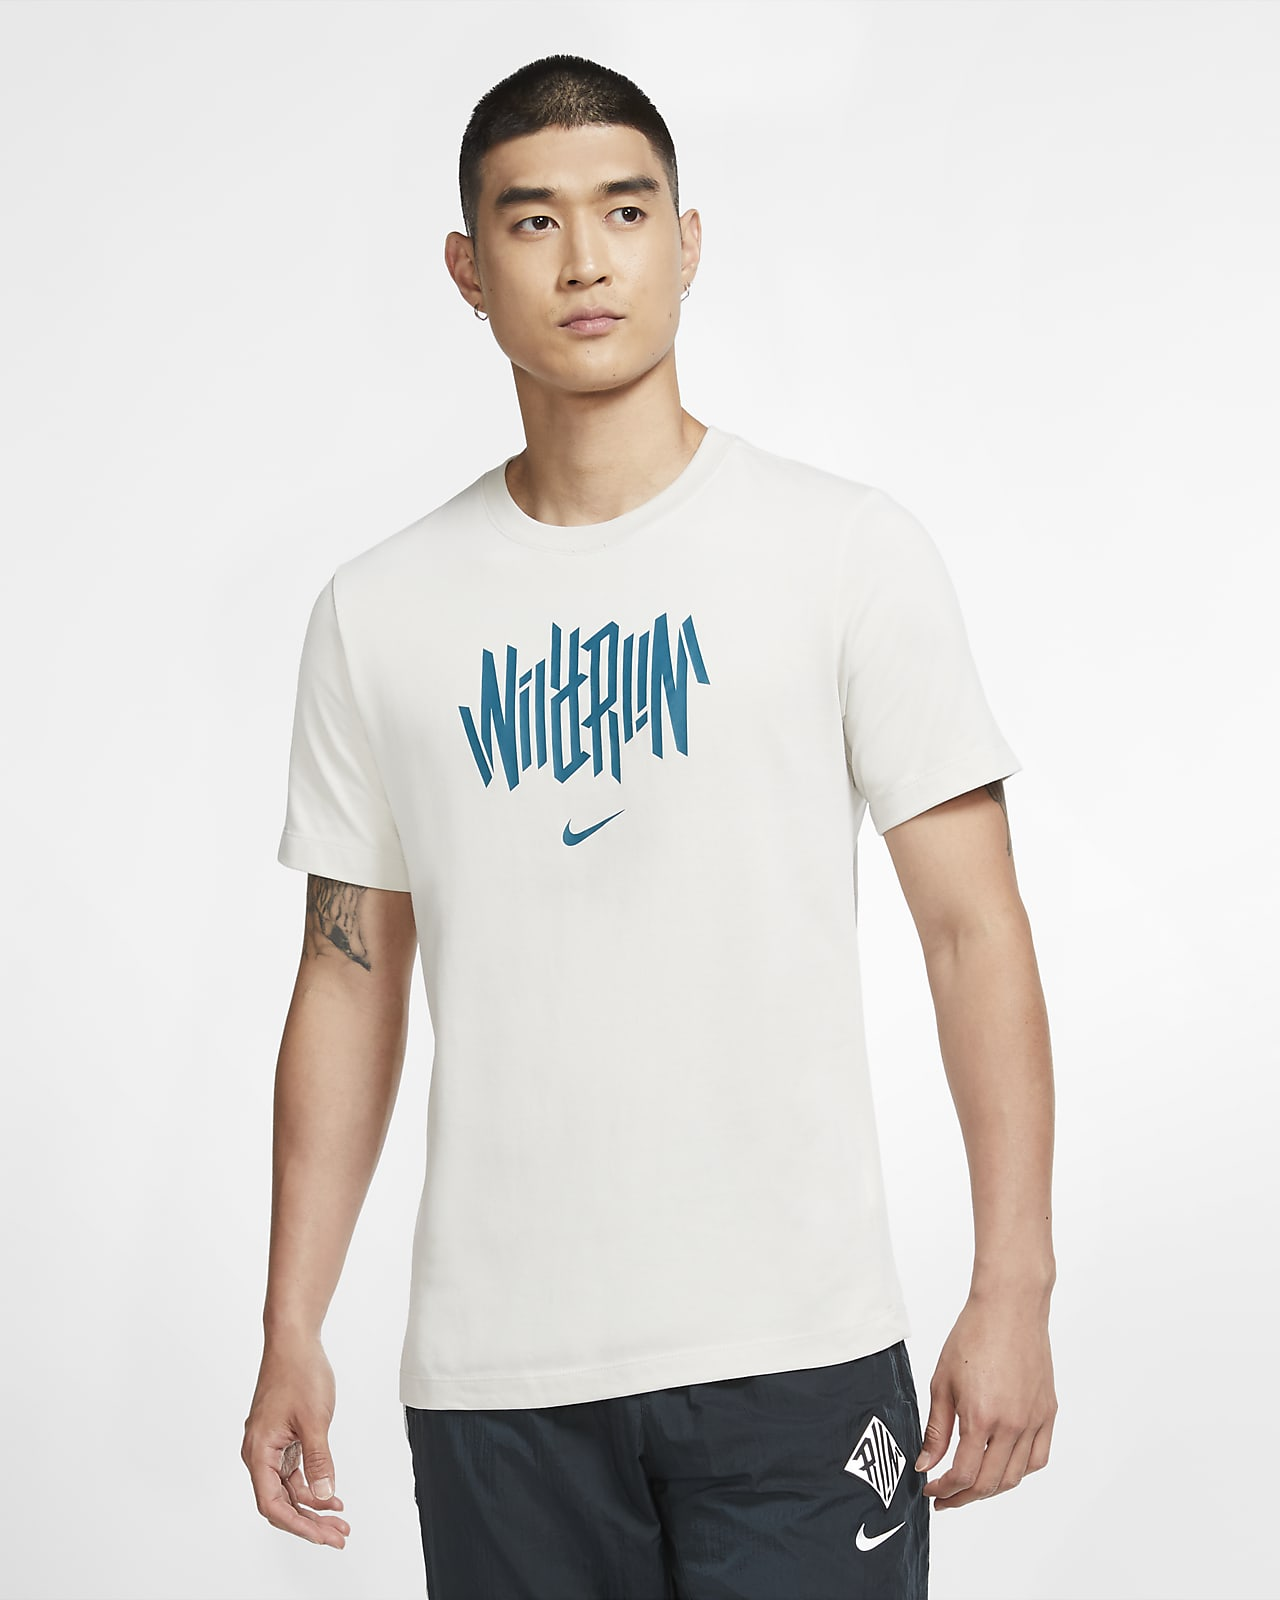 Nike Dri-FIT Wild Run Men's Running T-Shirt